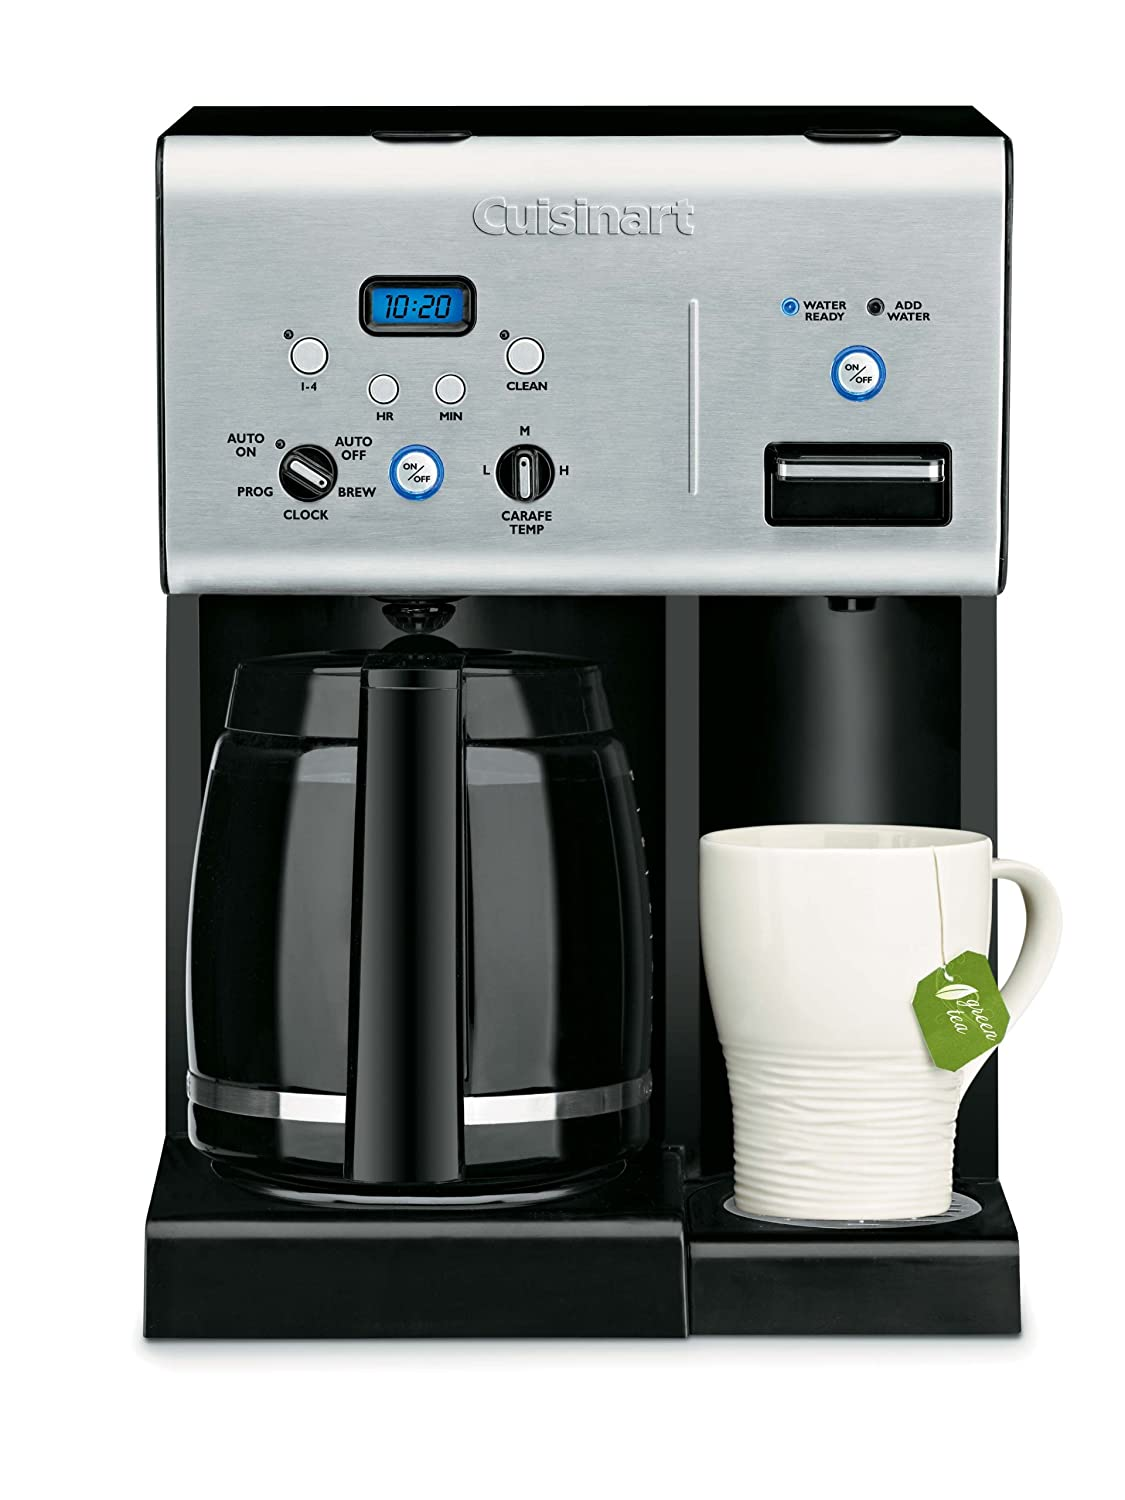 Cuisinart Coffee Maker – 12 cup – with Hot Water System